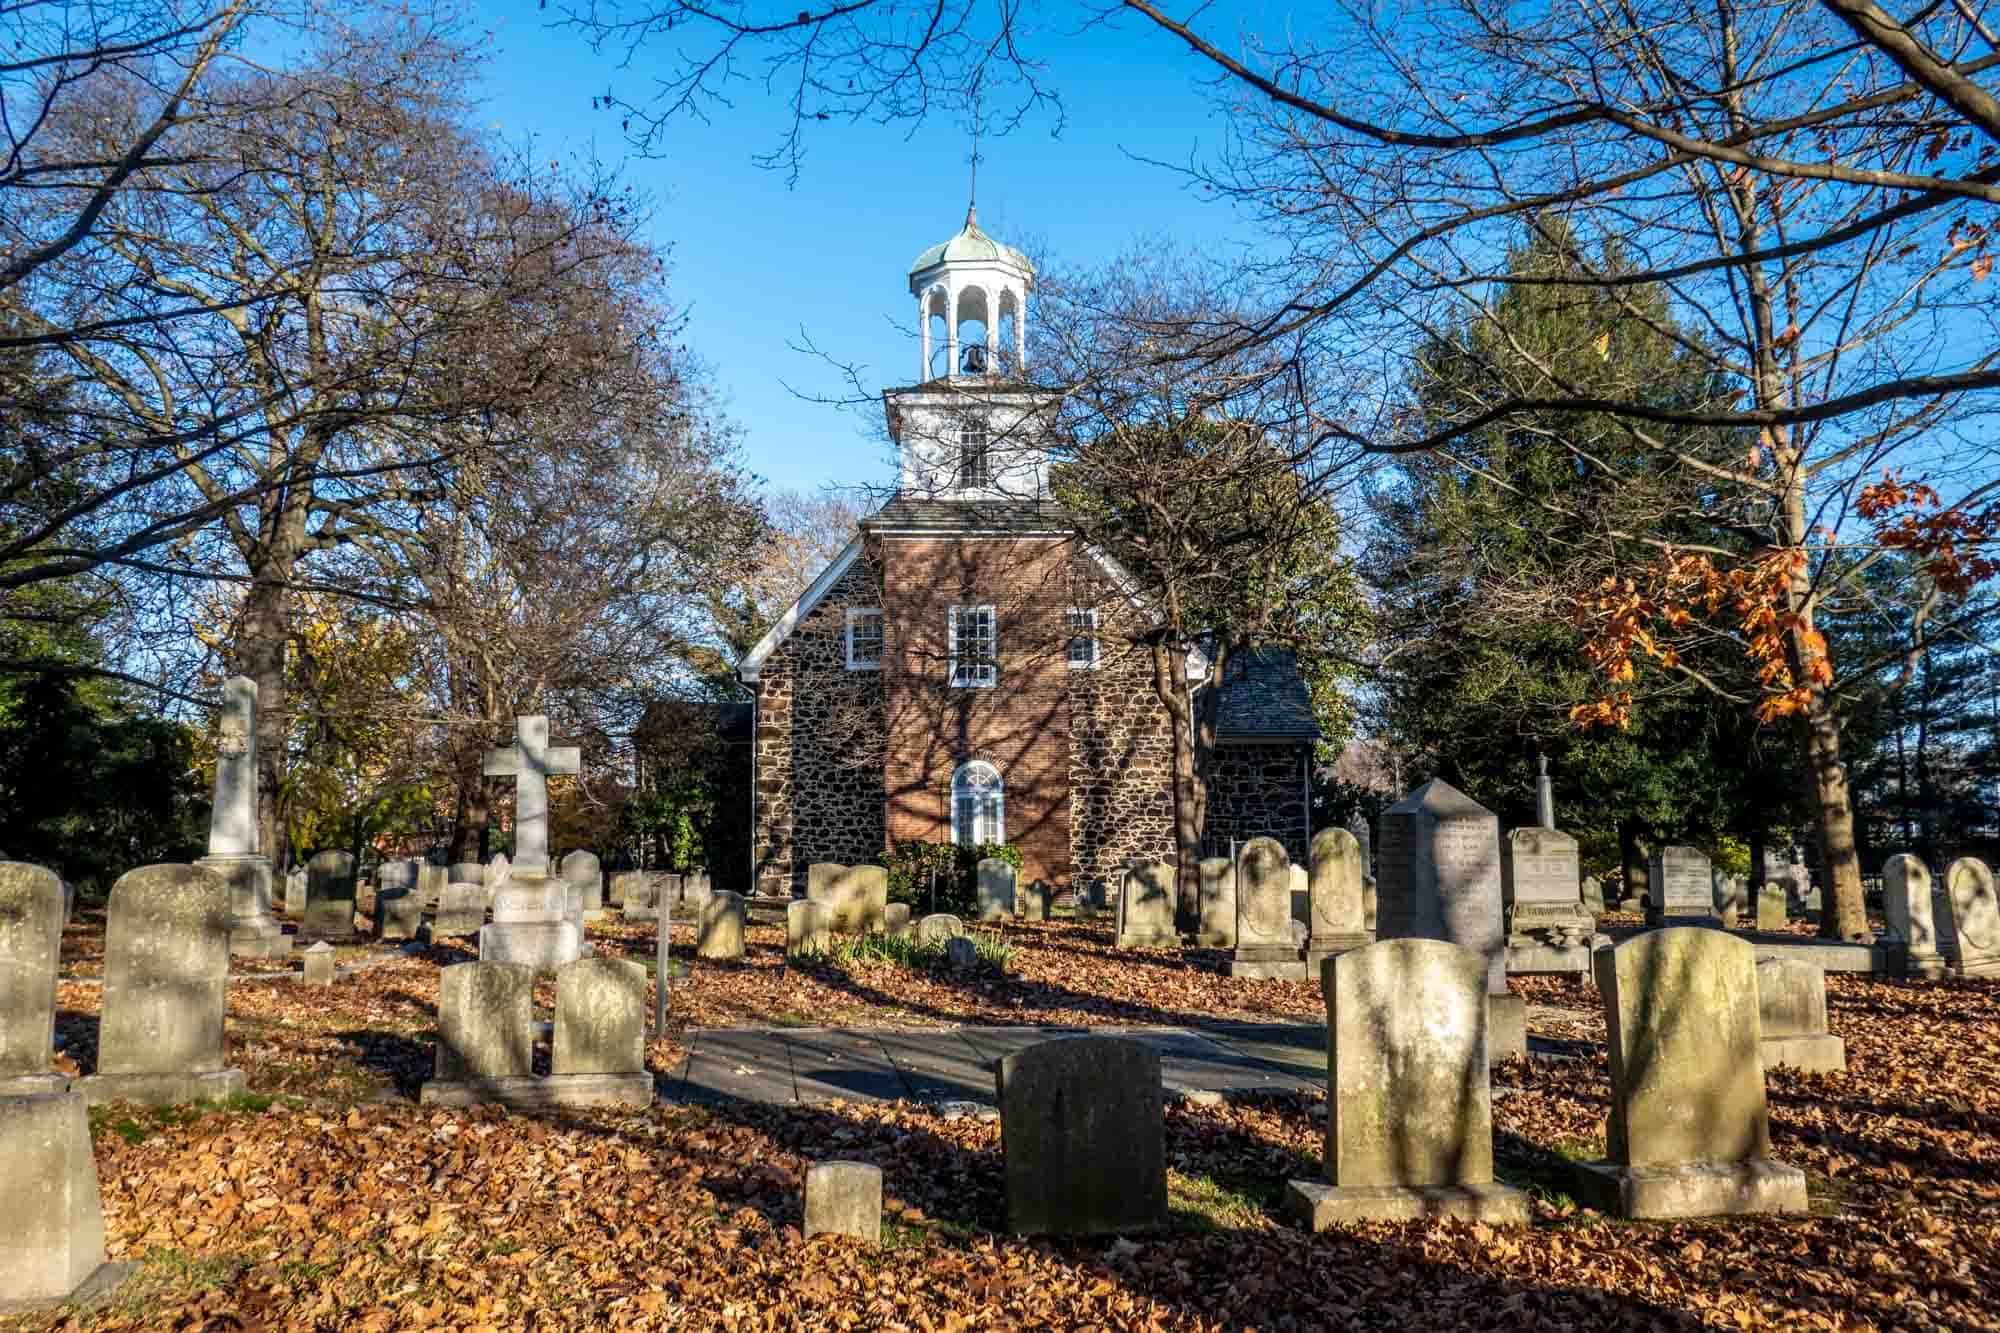 Old Swedes Church with tombstones